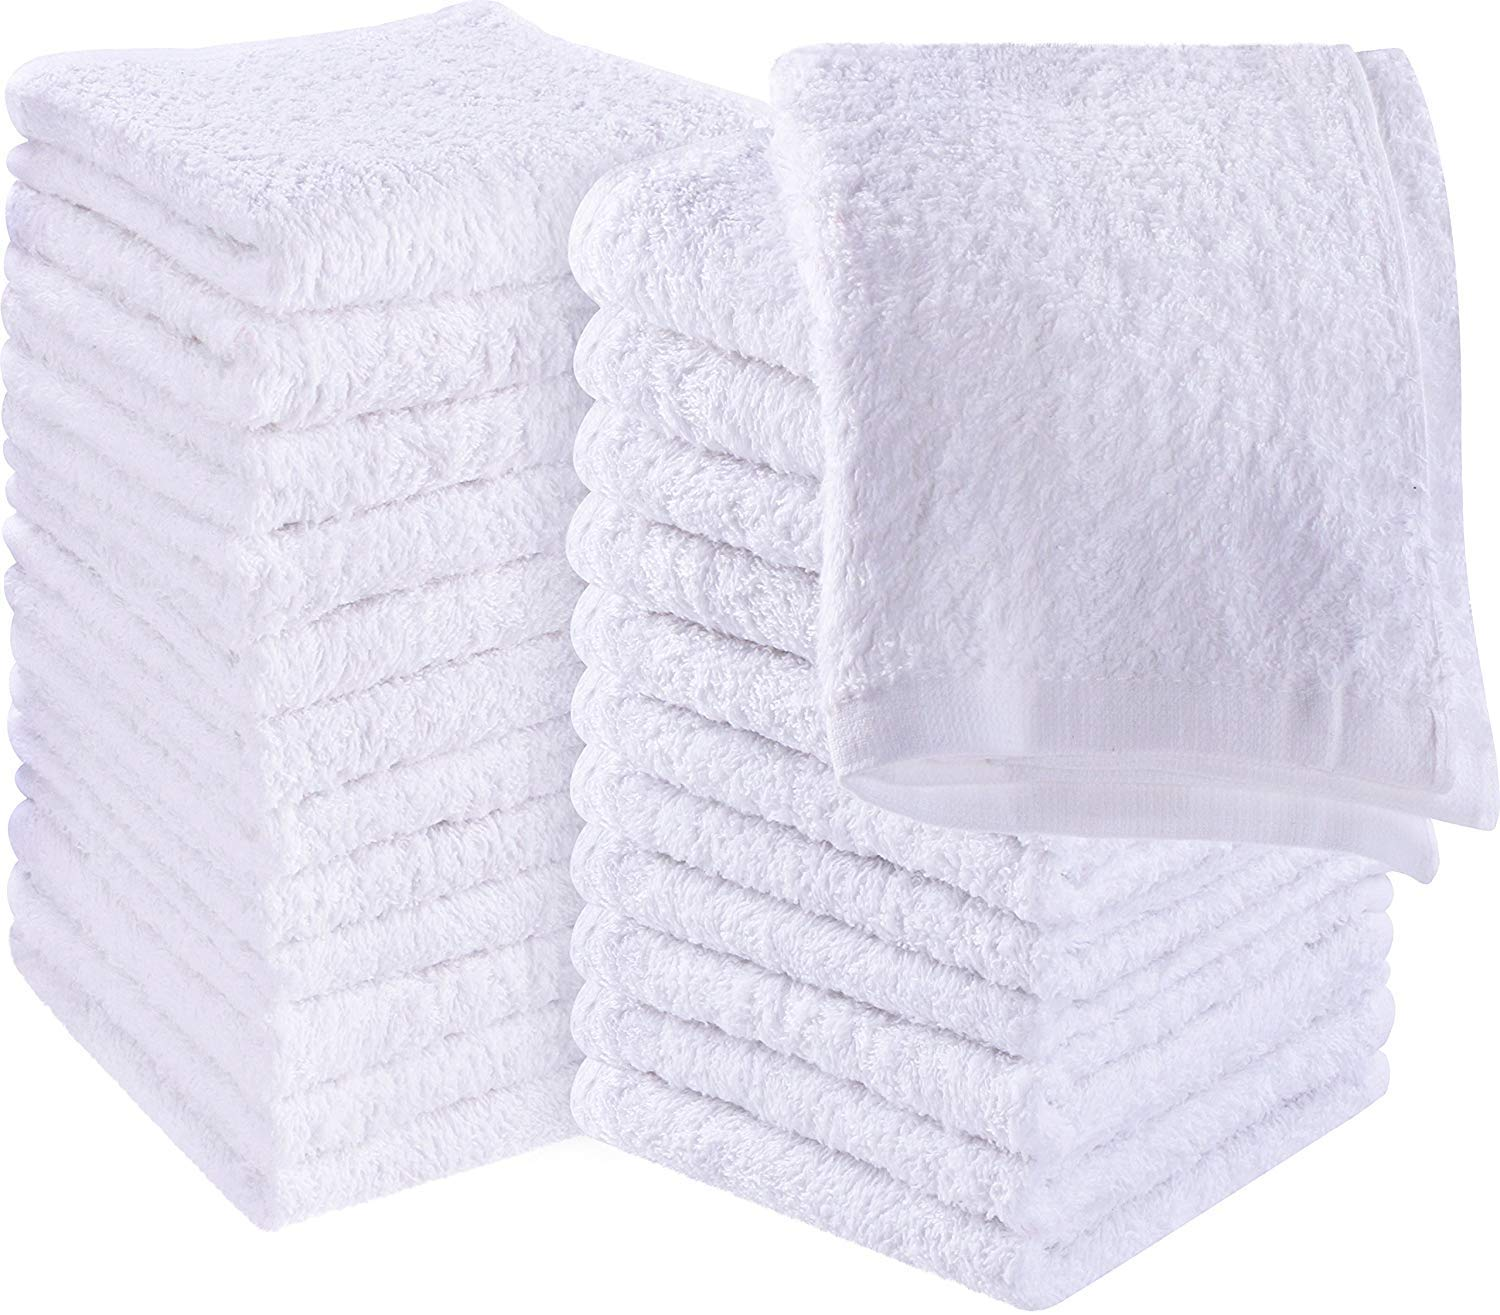 Red Star Rags Fluffy Washcloths/Face Cloths Towel Set (12 Pack, 13'' x1 3''), Premium White Washcloths - Super Soft, Thick, and Absorbent for Face, Hand, Spa & Gym by Red Star Rags